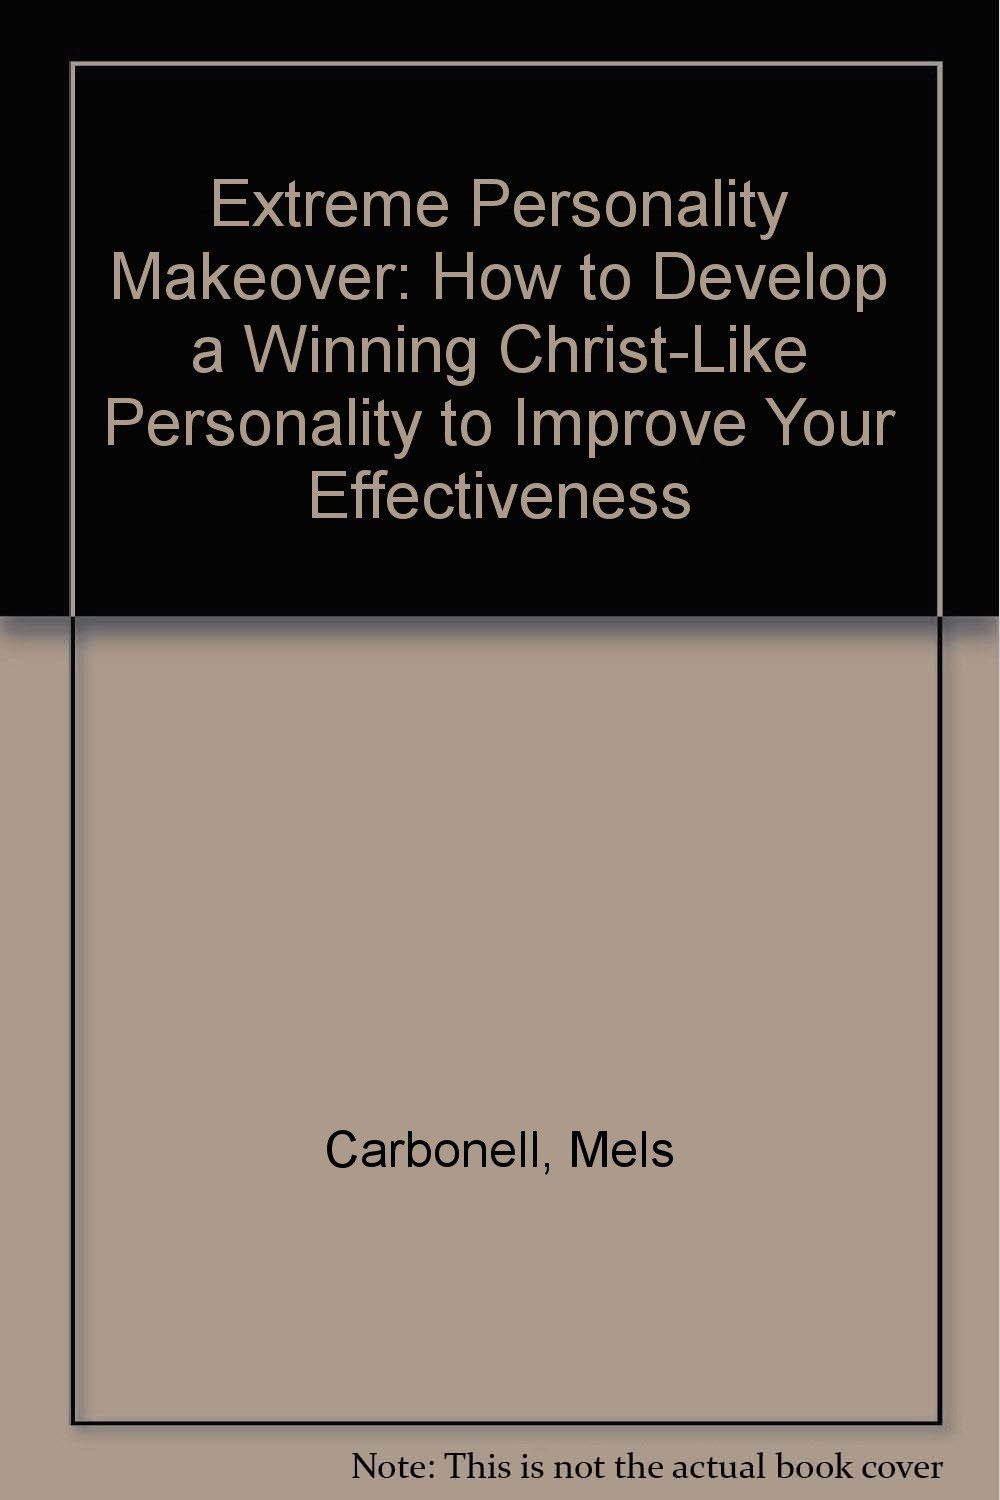 Extreme Personality Makeover: HOW TO DEVELOP A WINNING CHRISTLIKE PERSONALITY TO IMPROVE YOUR EFFECTIVENESS pdf